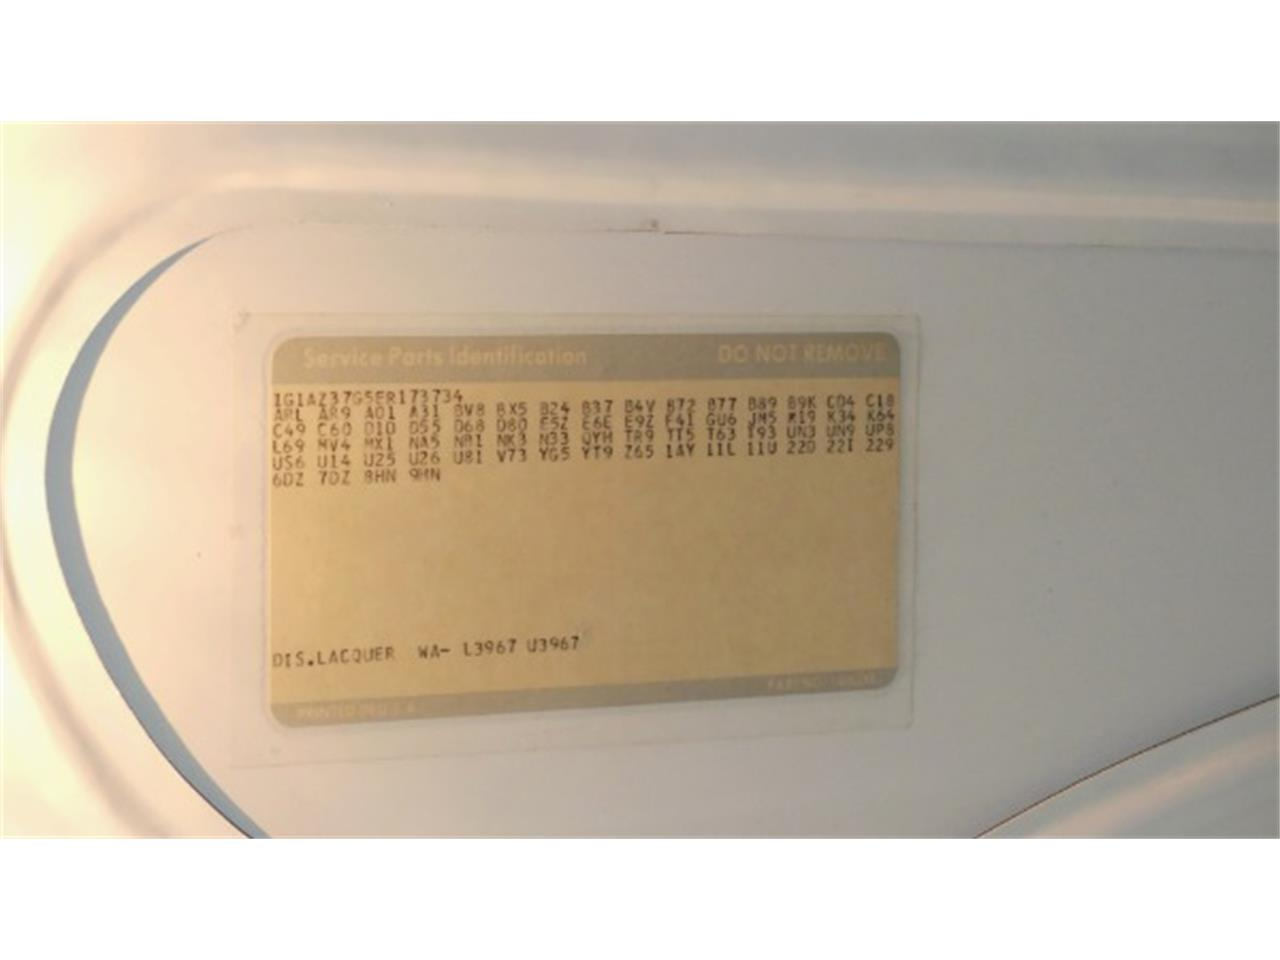 1984 Chevrolet Monte Carlo For Sale Cc 1164022 84 Fuse Box Large Picture Of Oy5y